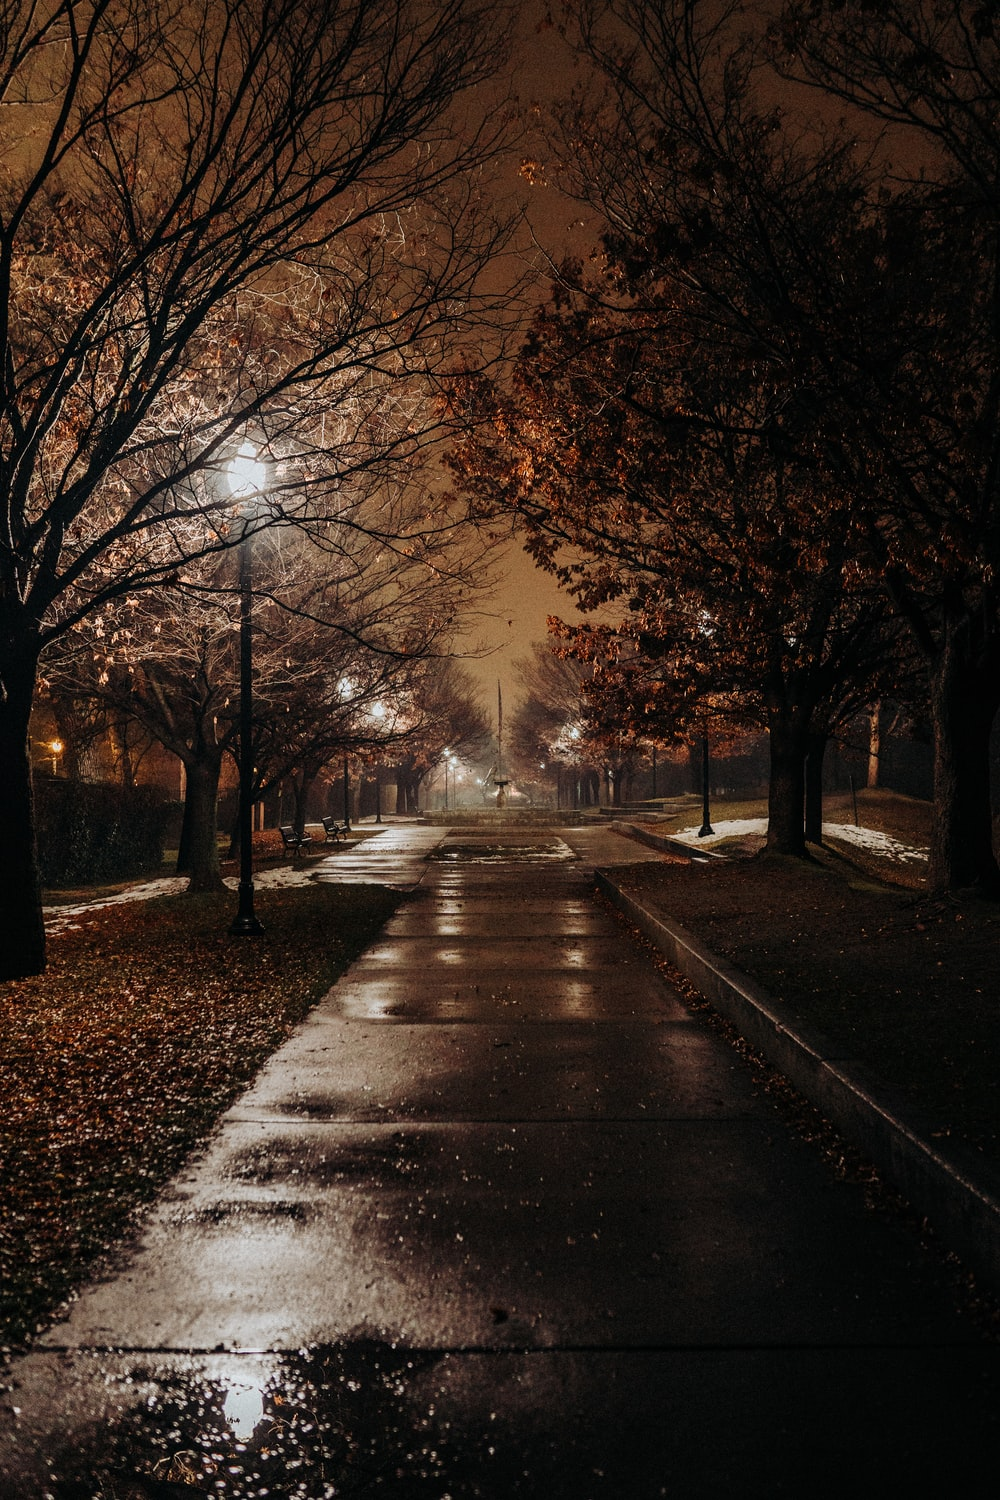 concrete road between trees during nighttime